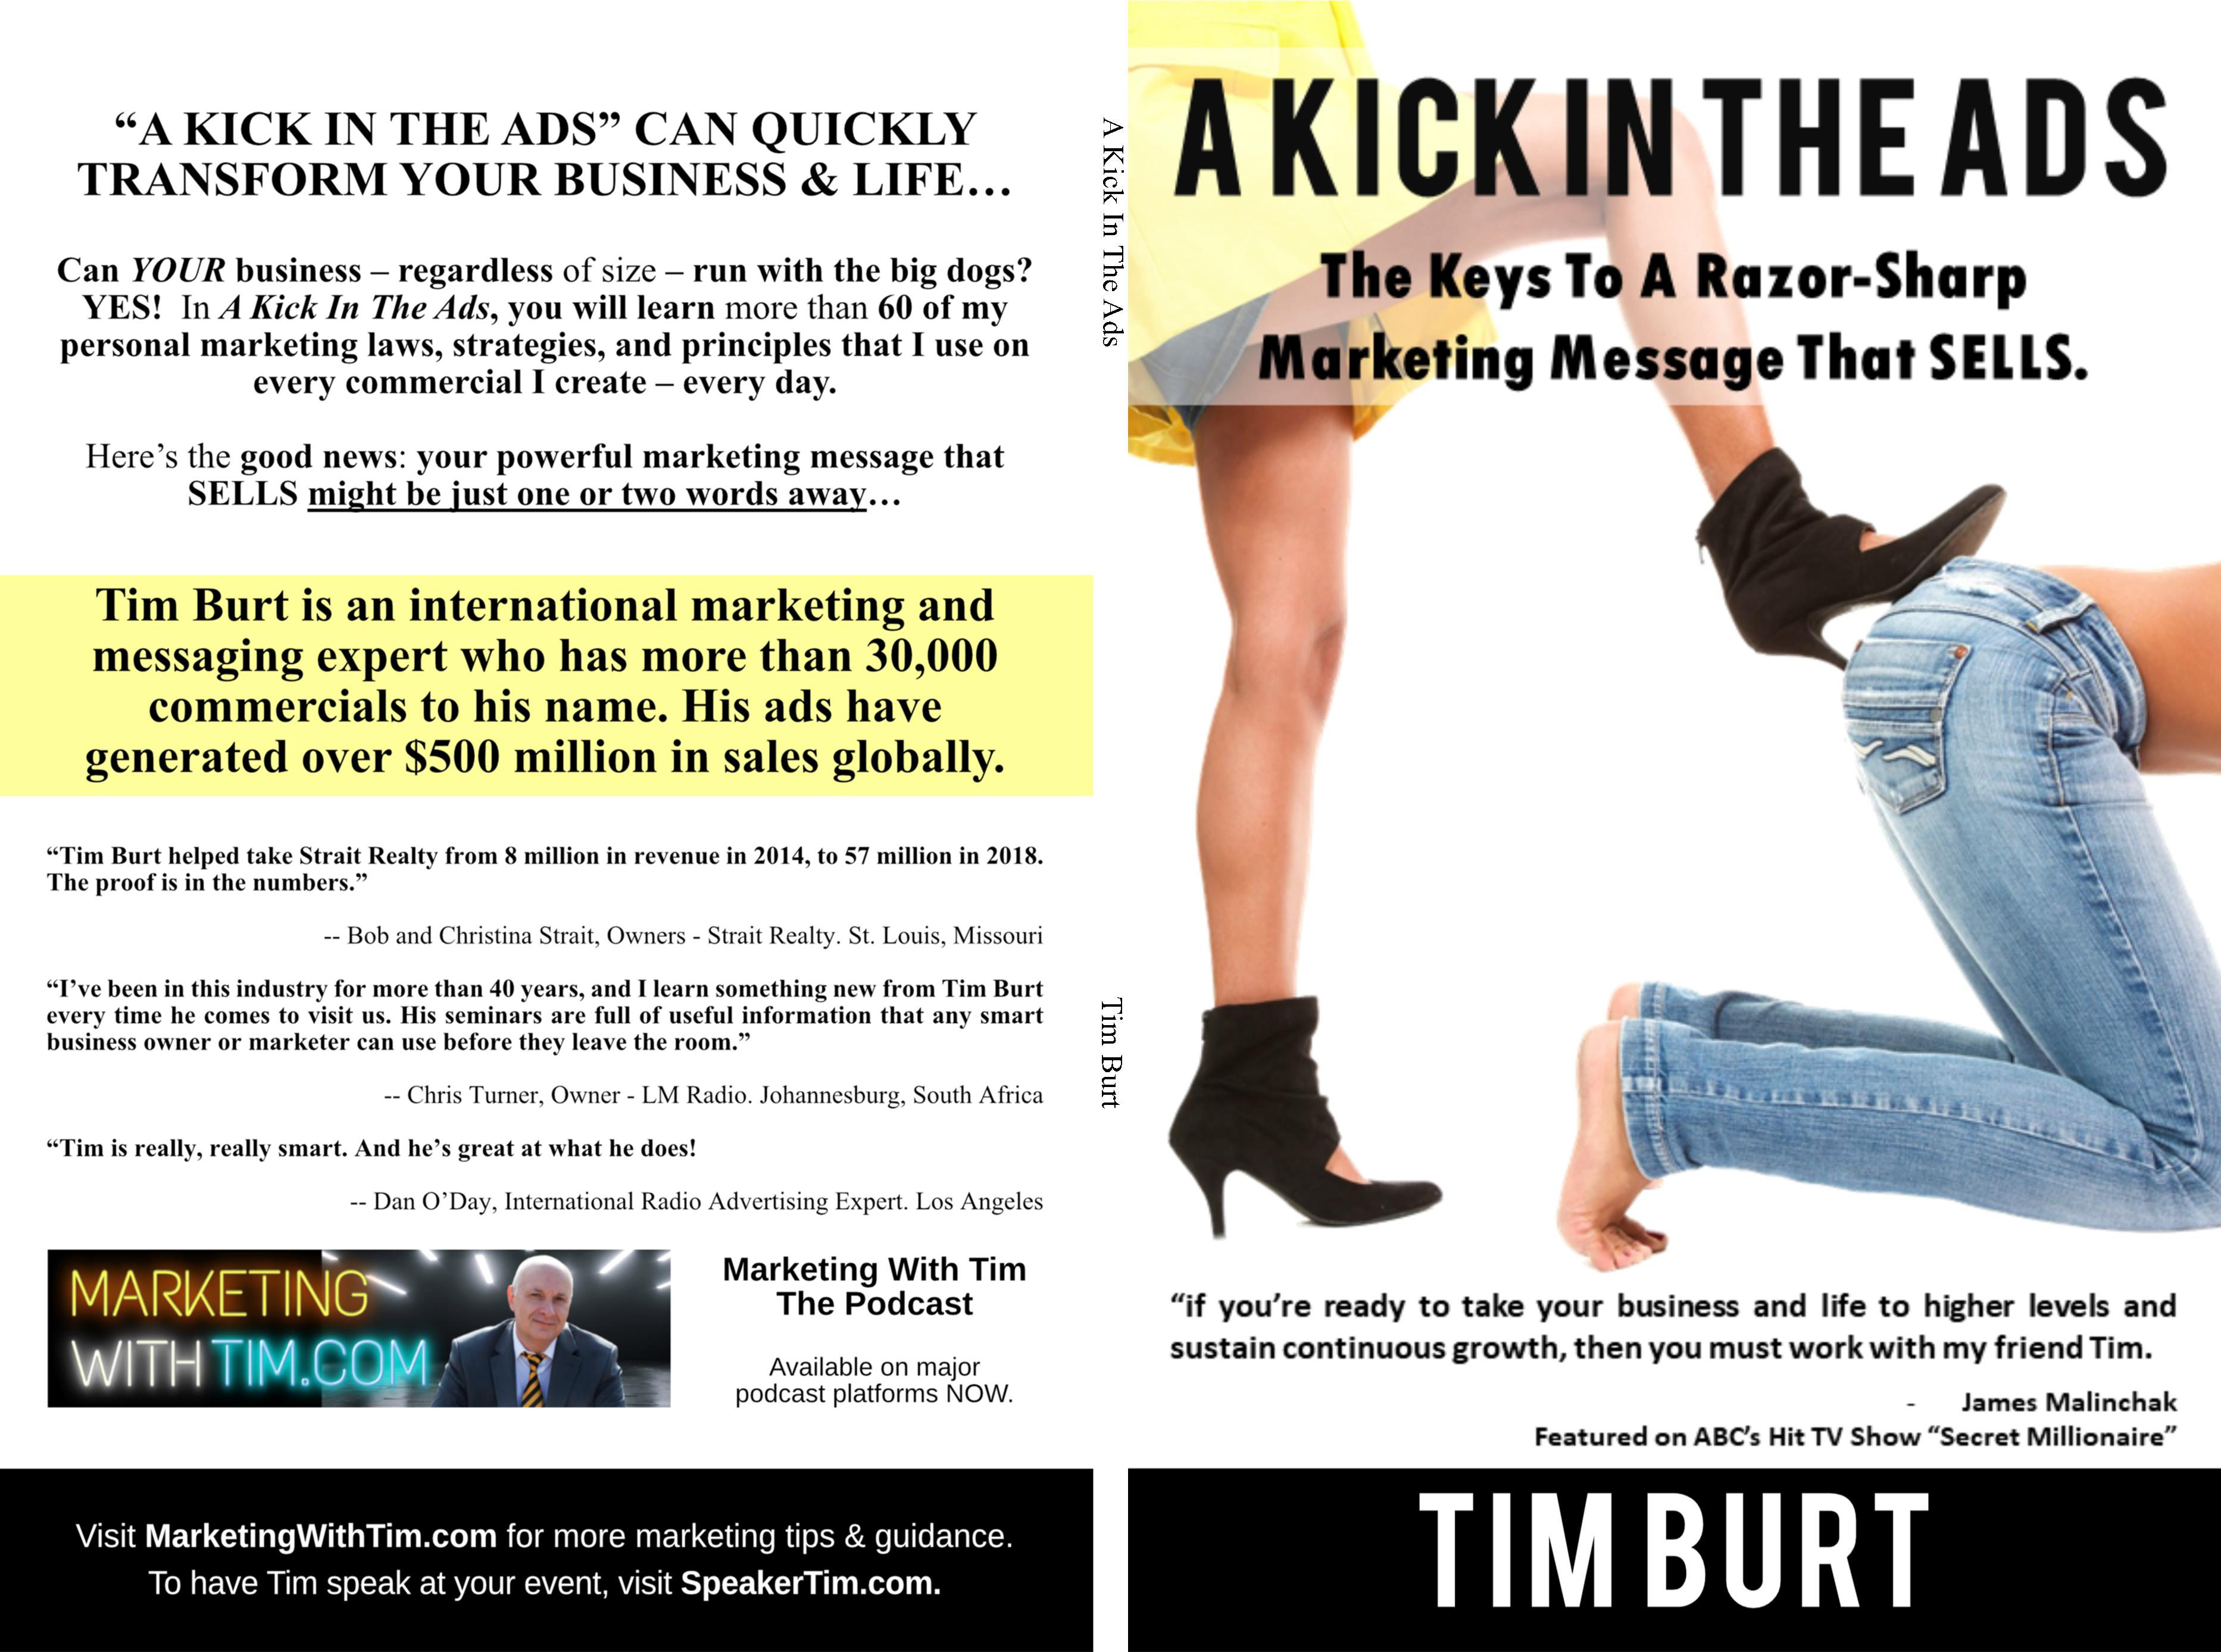 A Kick In The Ads cover image